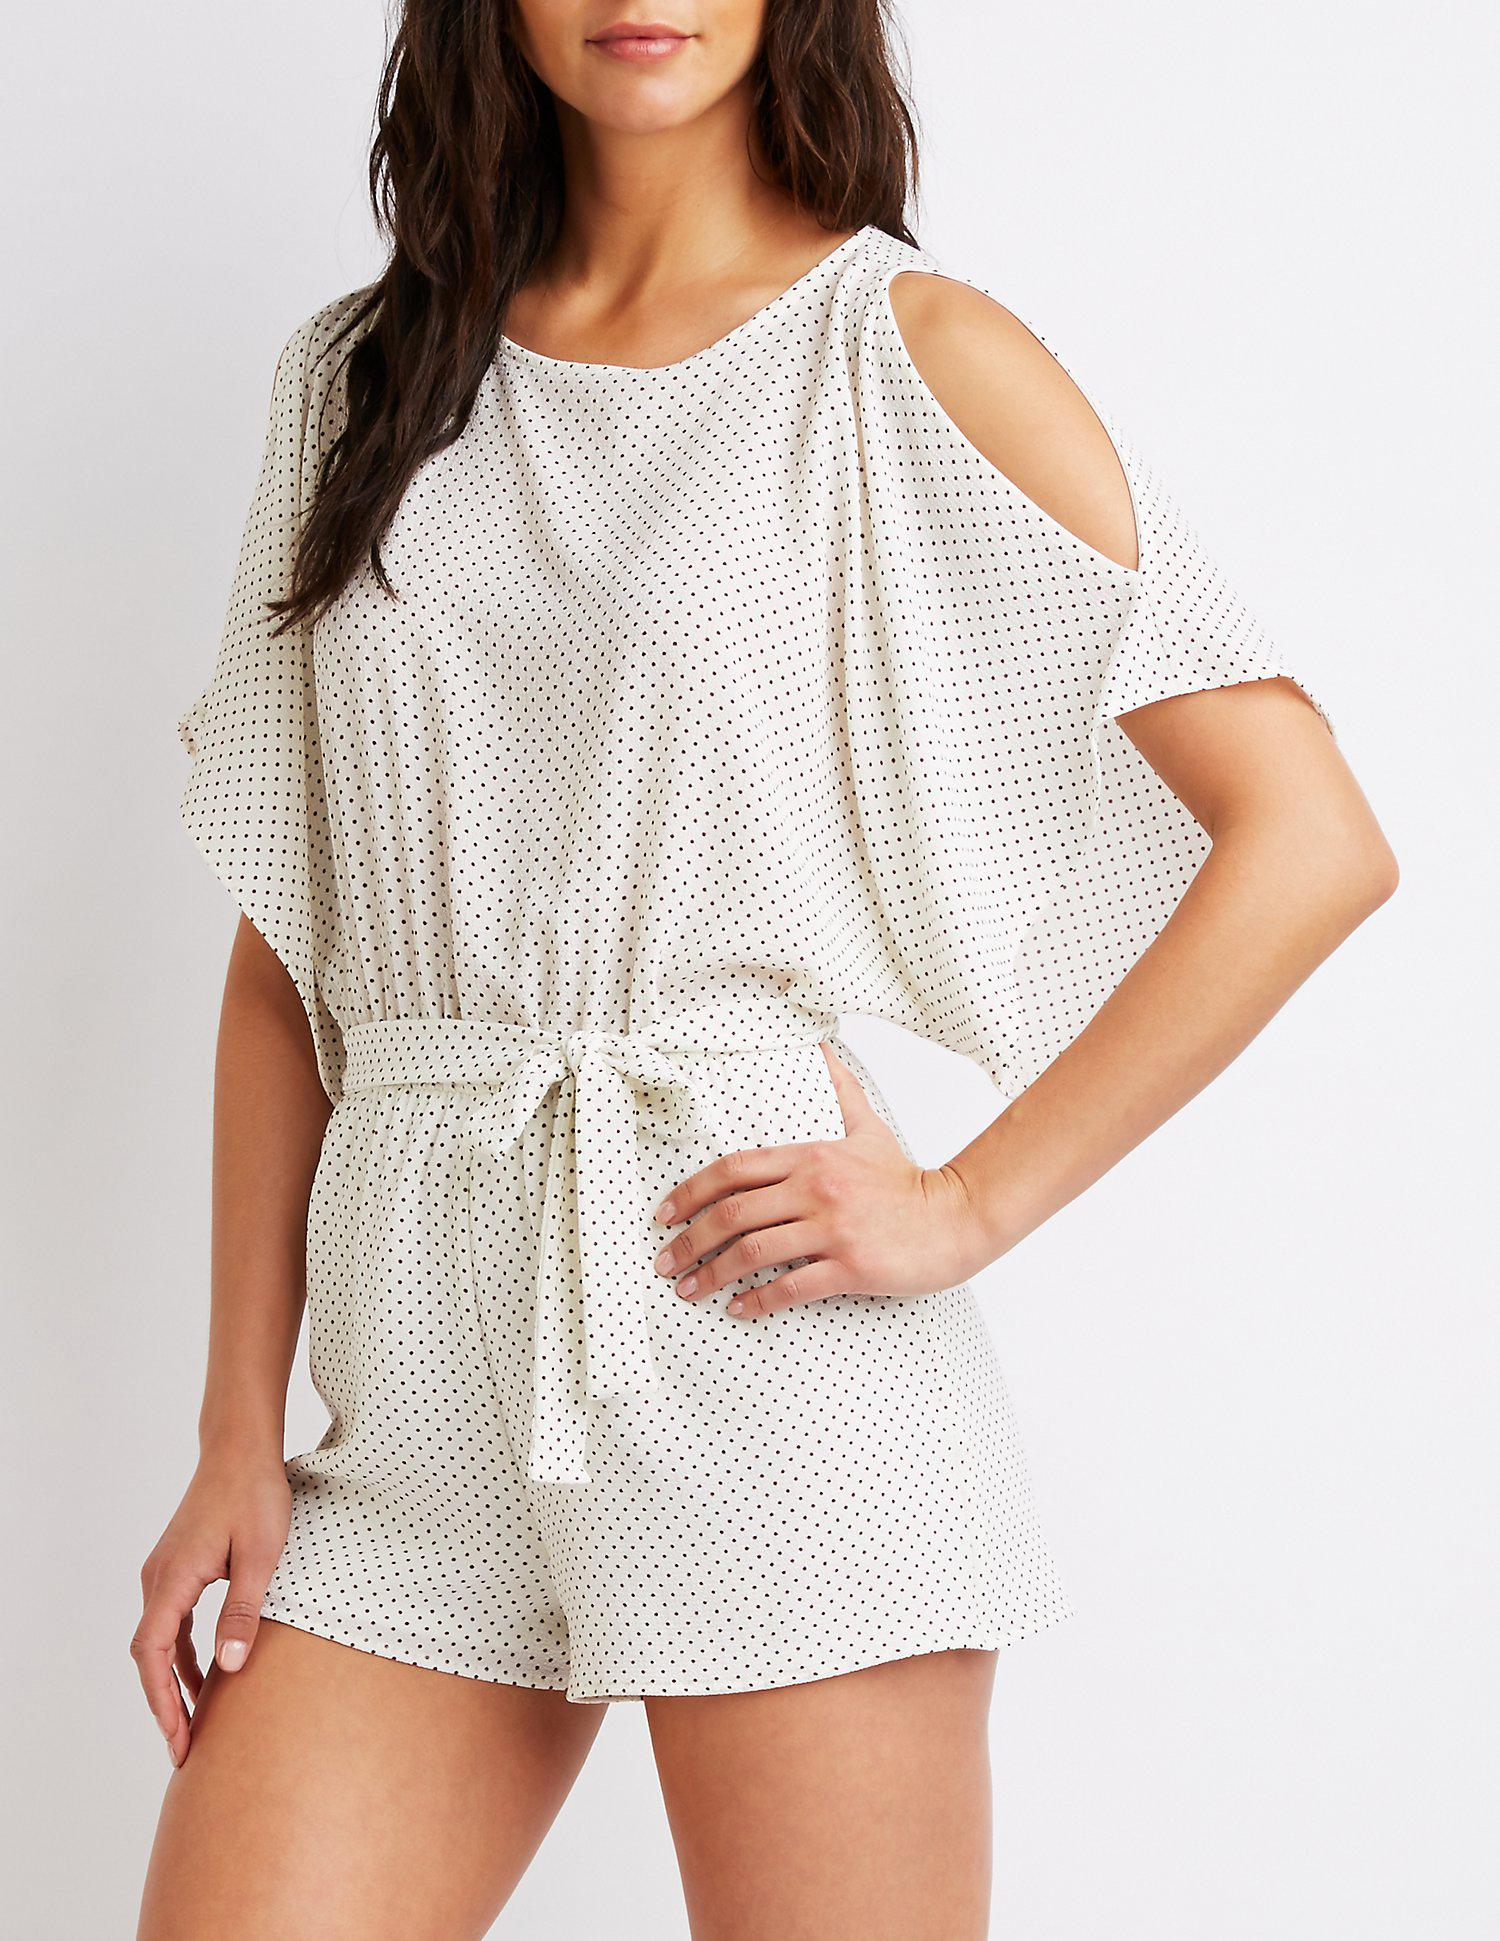 2932cc68791 Lyst - Charlotte Russe Striped Cold Shoulder Romper in White - Save ...